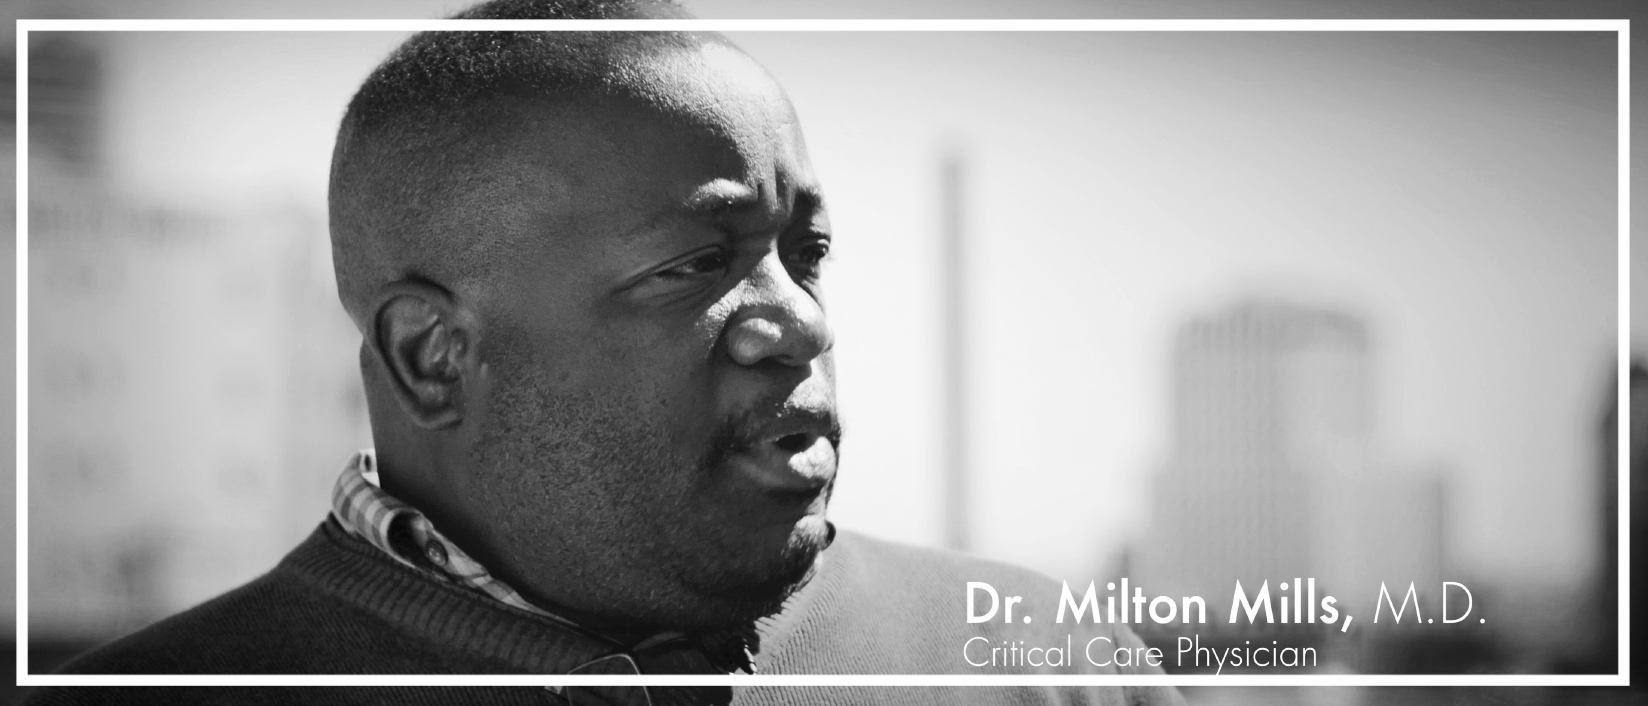 Dr. Milton Mills  practices urgent care medicine in the Washington DC area. Dr. Mills earned his medical degree at Stanford University School of Medicine, and completed an Internal Medicine residency at Georgetown University Hospital. He has published several research journal articles dealing with racial bias in federal nutrition policy.